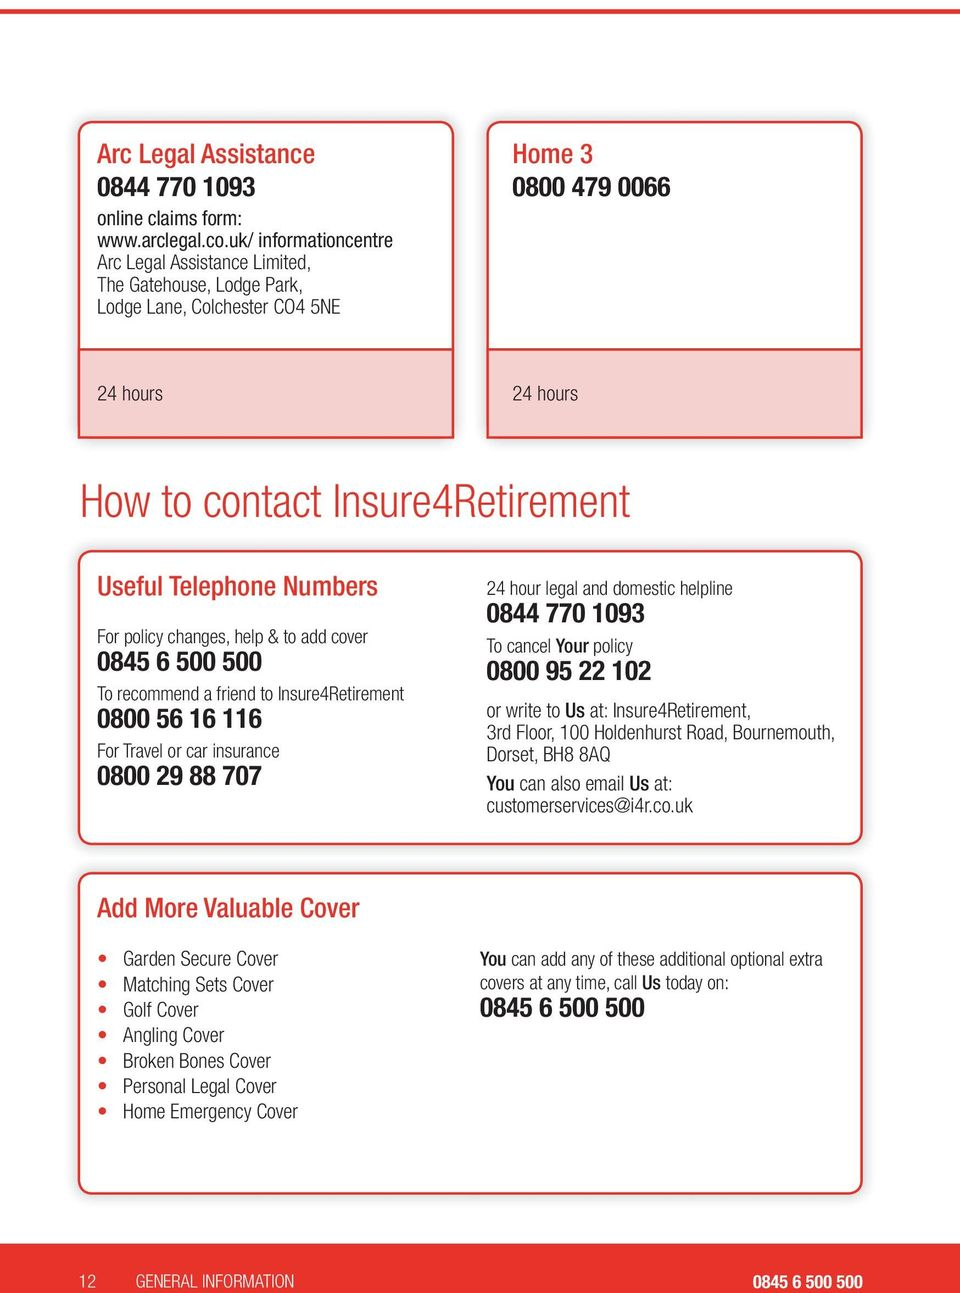 Numbers For policy changes, help & to add cover 0845 6 500 500 To recommend a friend to Insure4Retirement 0800 56 16 116 For Travel or car insurance 0800 29 88 707 24 hour legal and domestic helpline